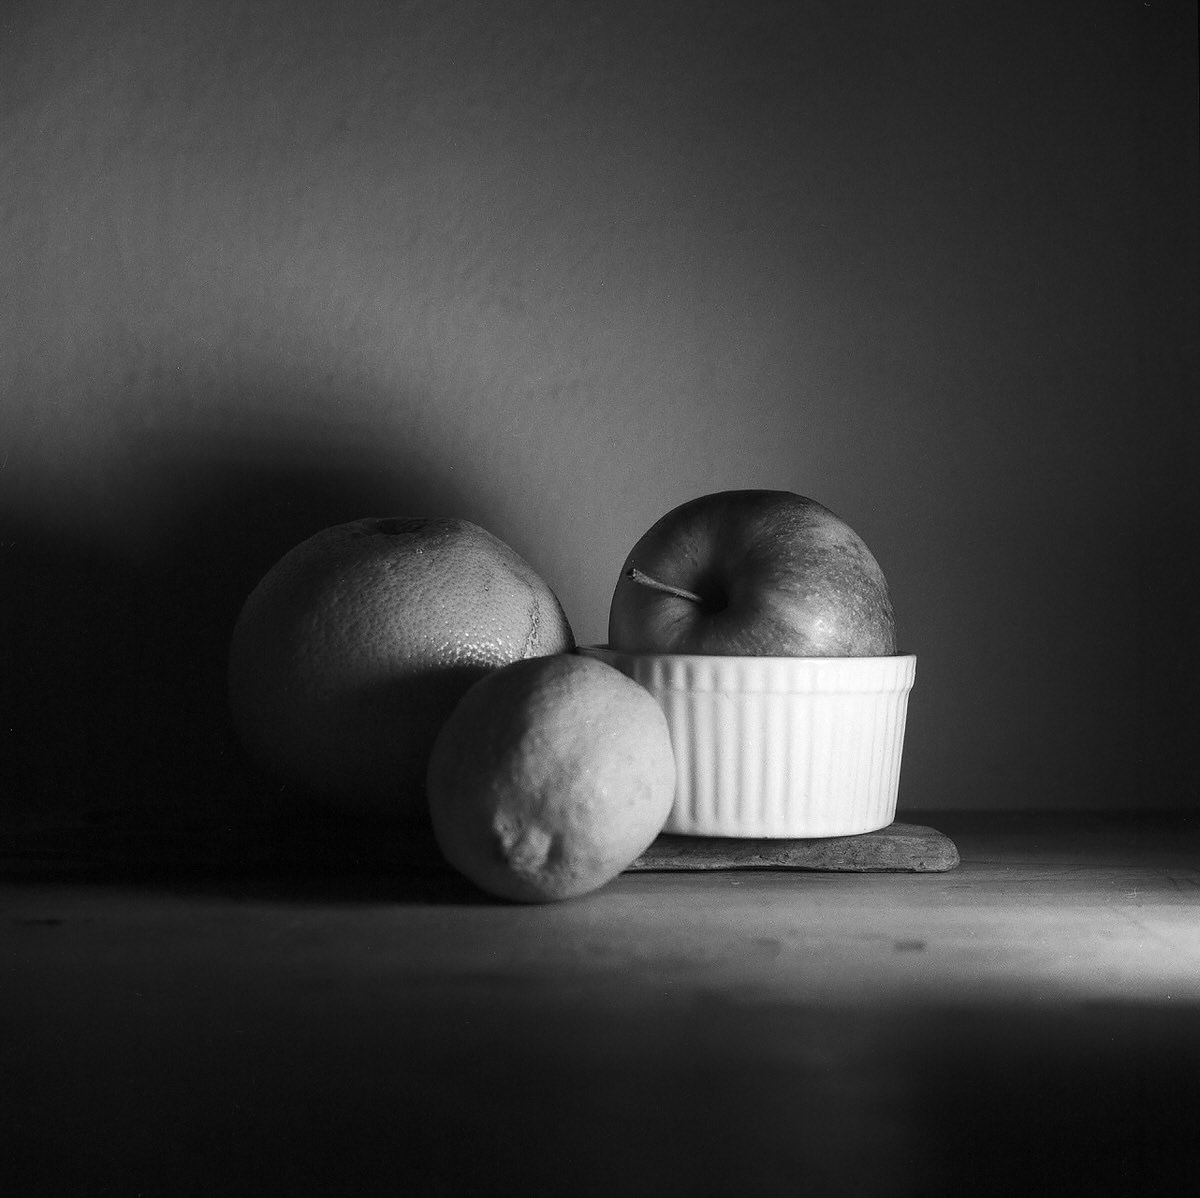 Apple & Lemon – Still Life Photography - Yashica MAT-124 with Fomapan 200 Creative